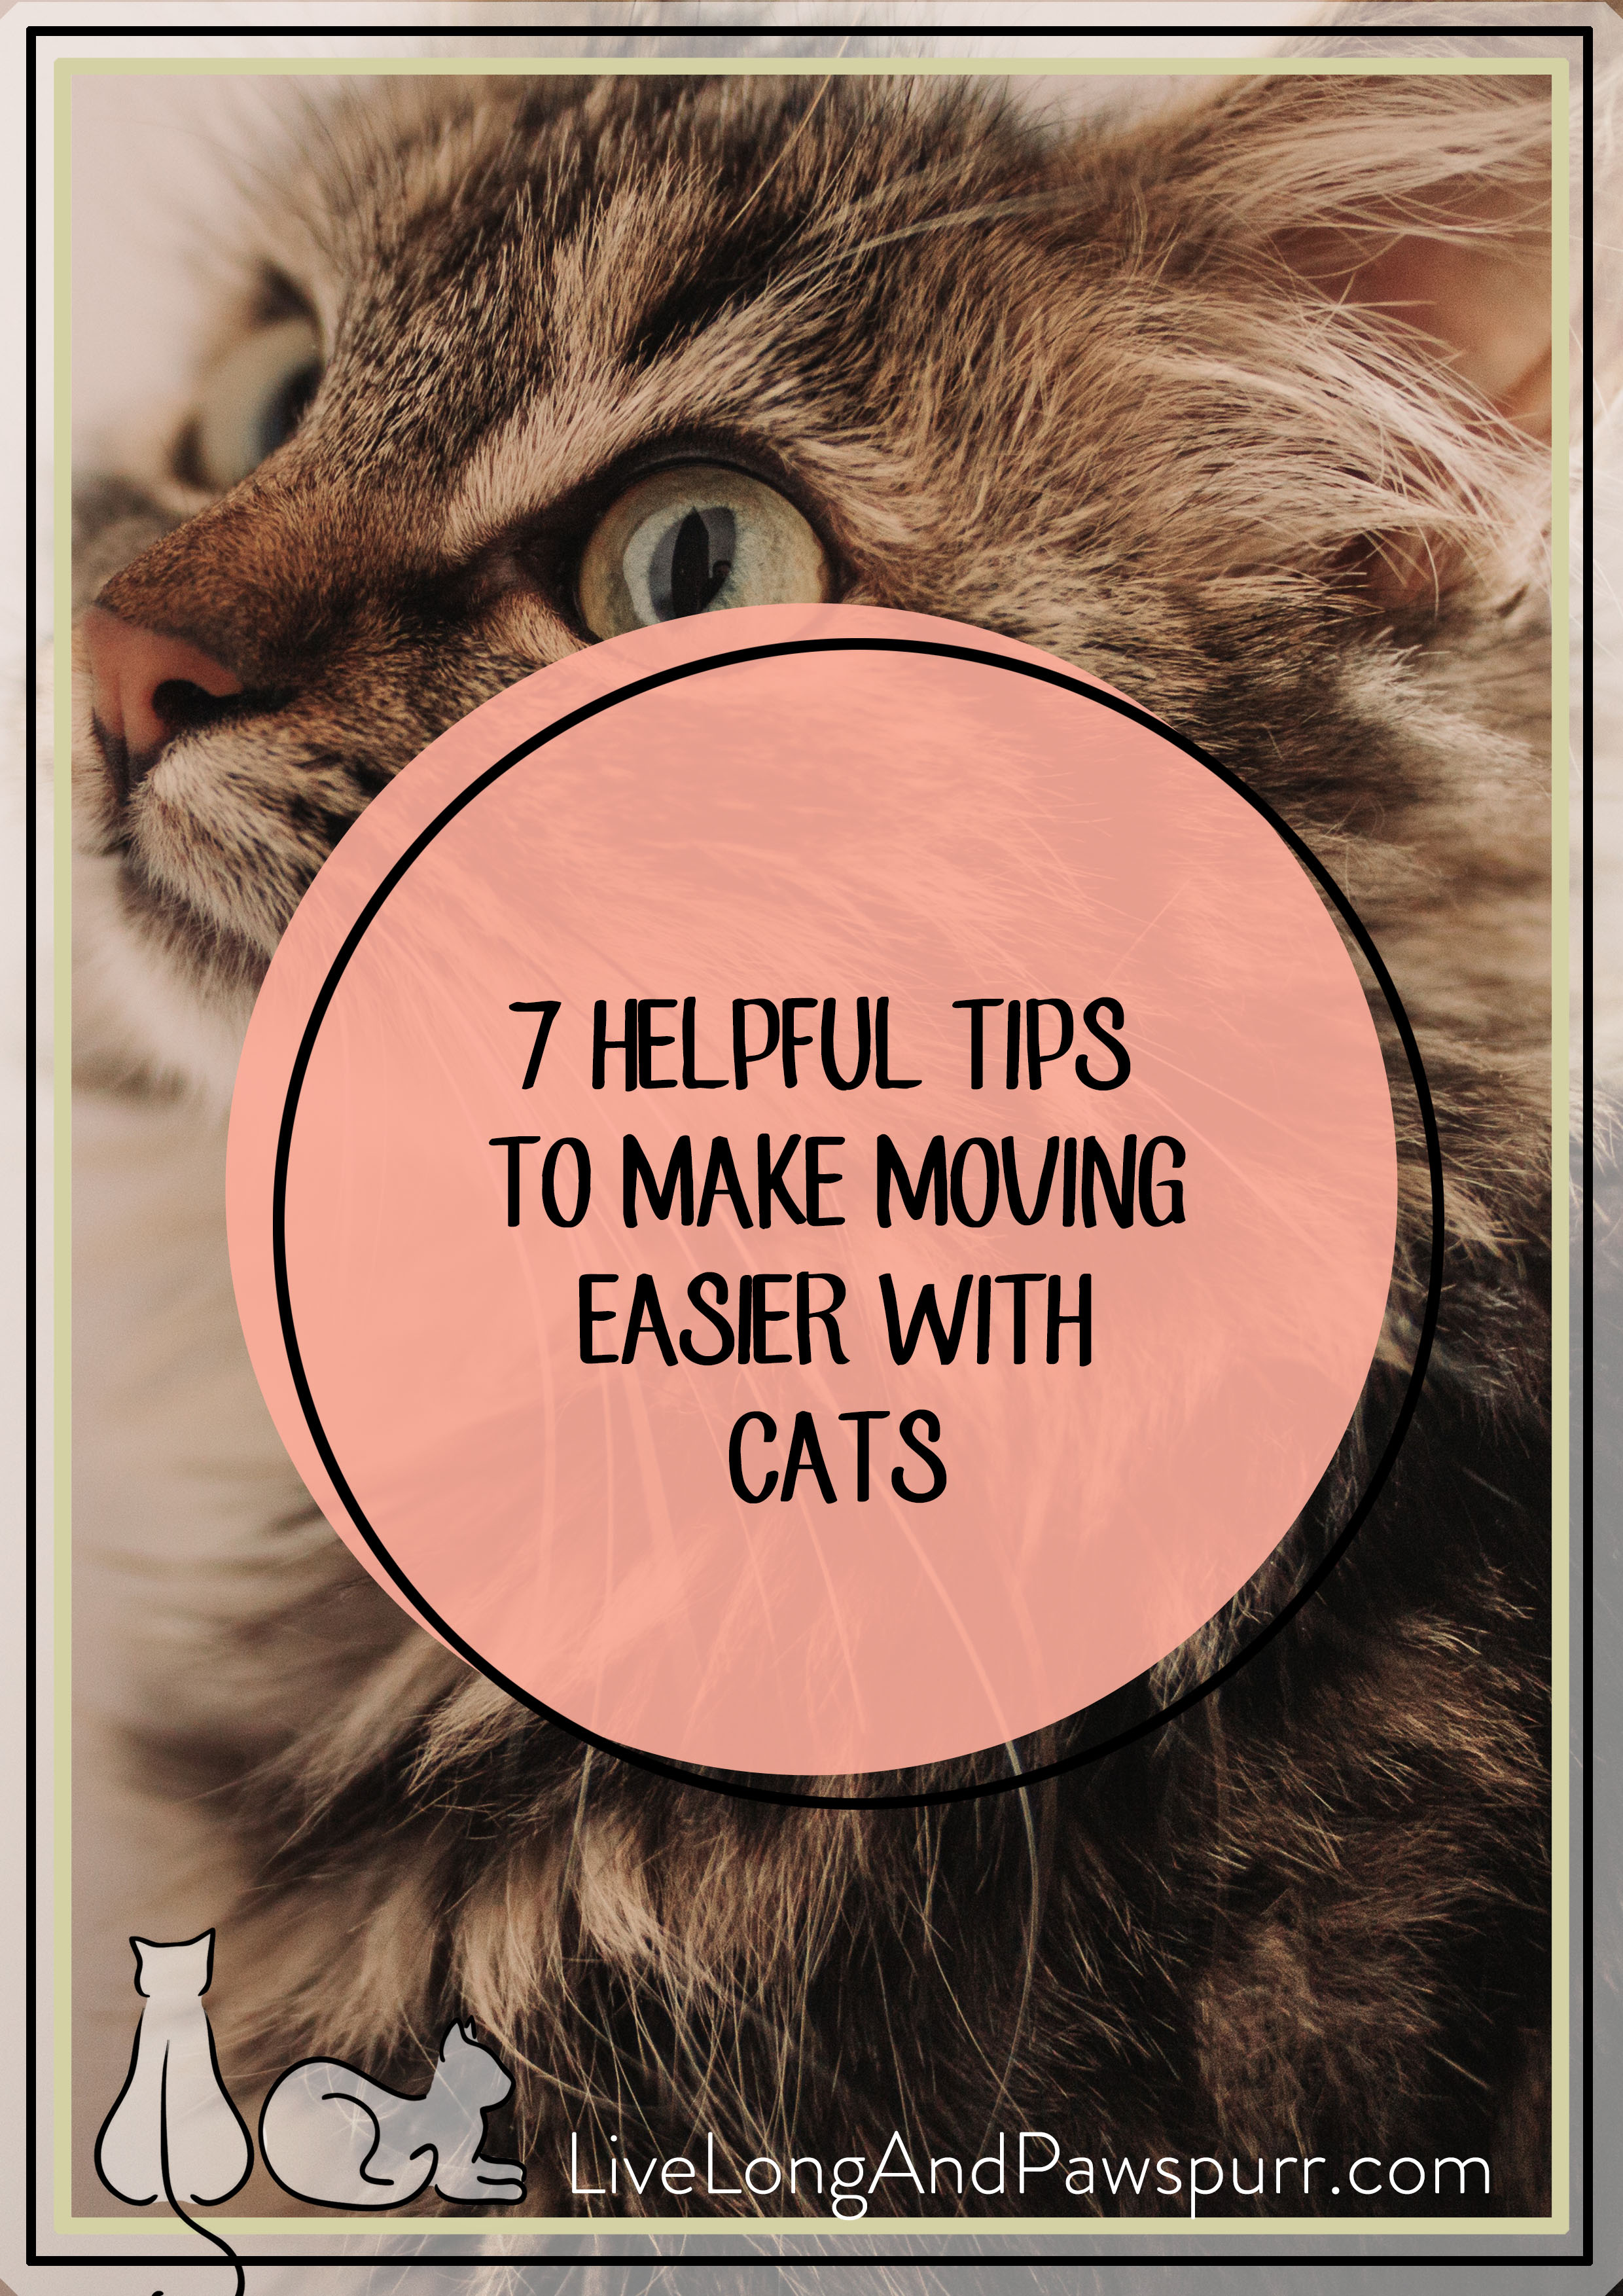 MOVING WITH CATS PIN1.jpg